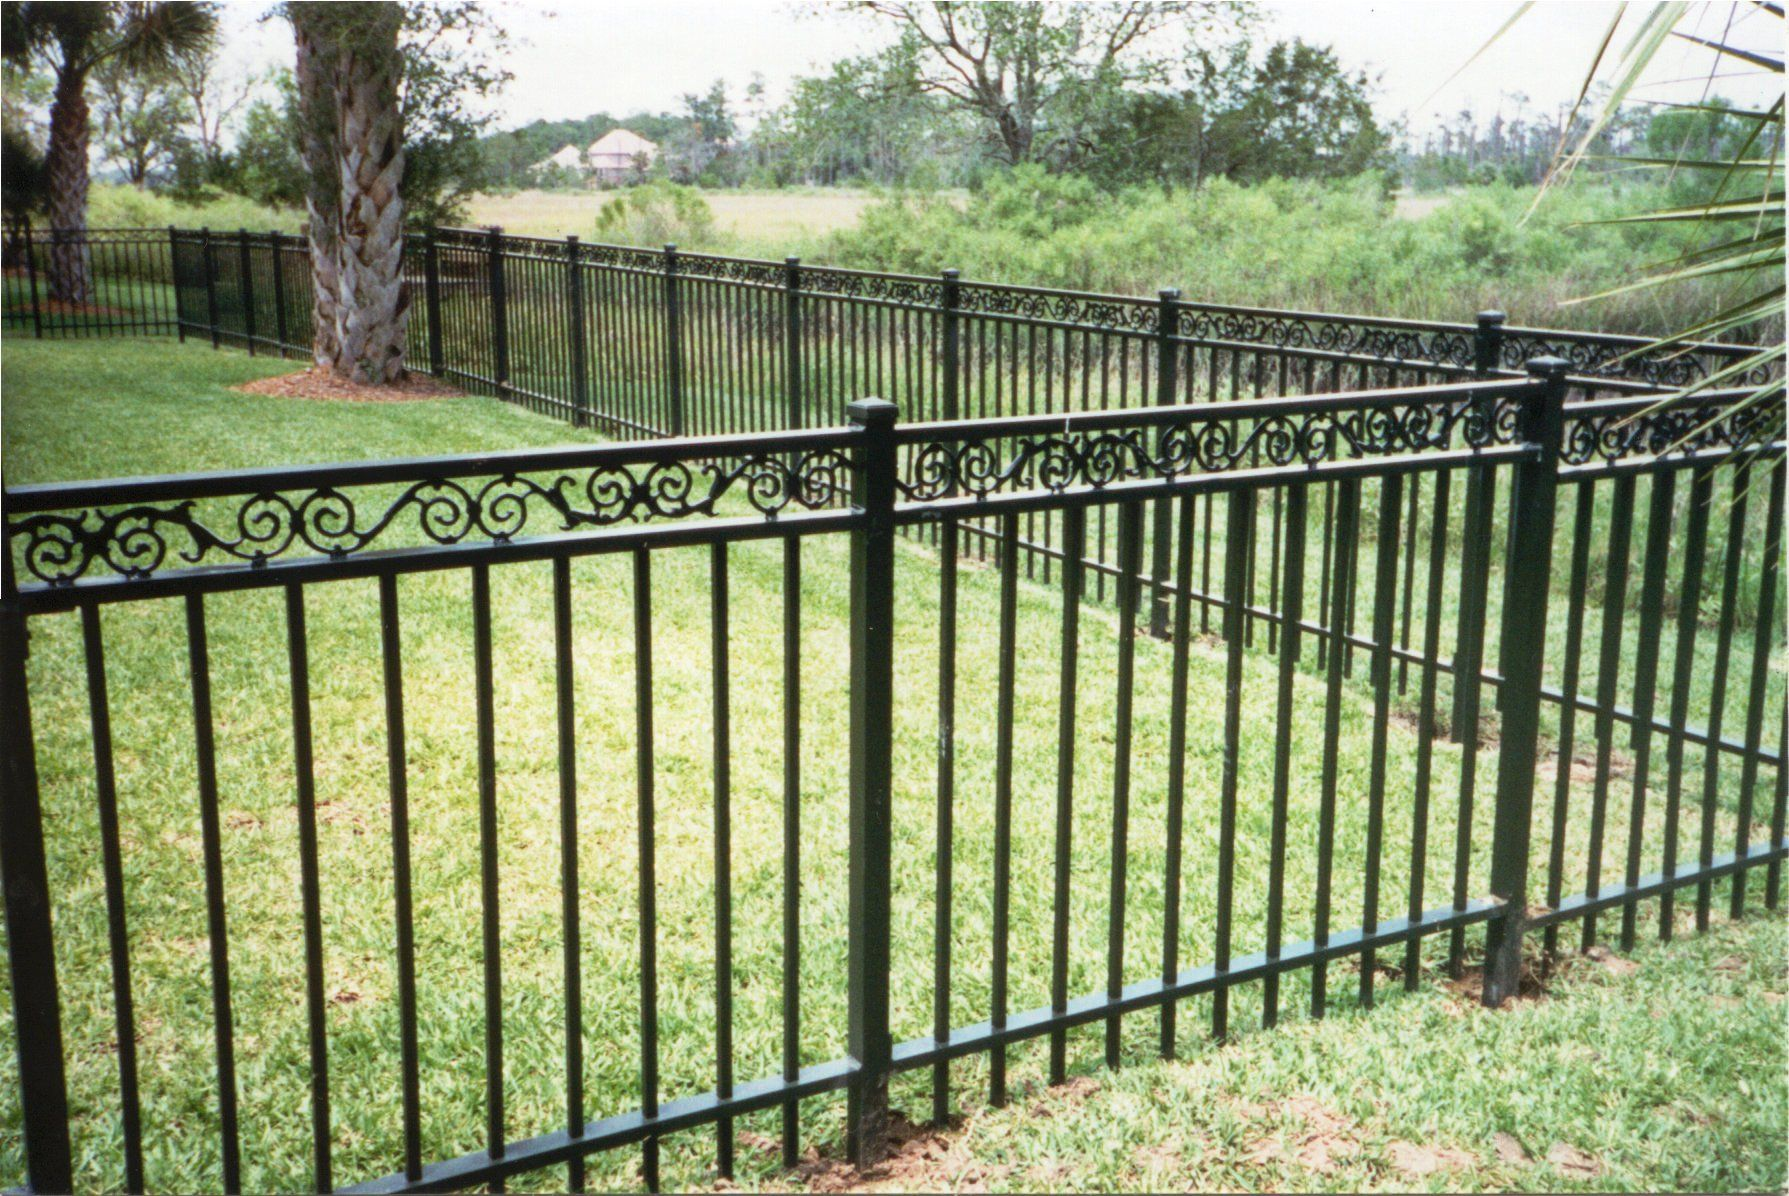 Wrought Iron Fence Ideas Of Wrought Iron Fences And Gates With Hand Forged Ornamental Iron